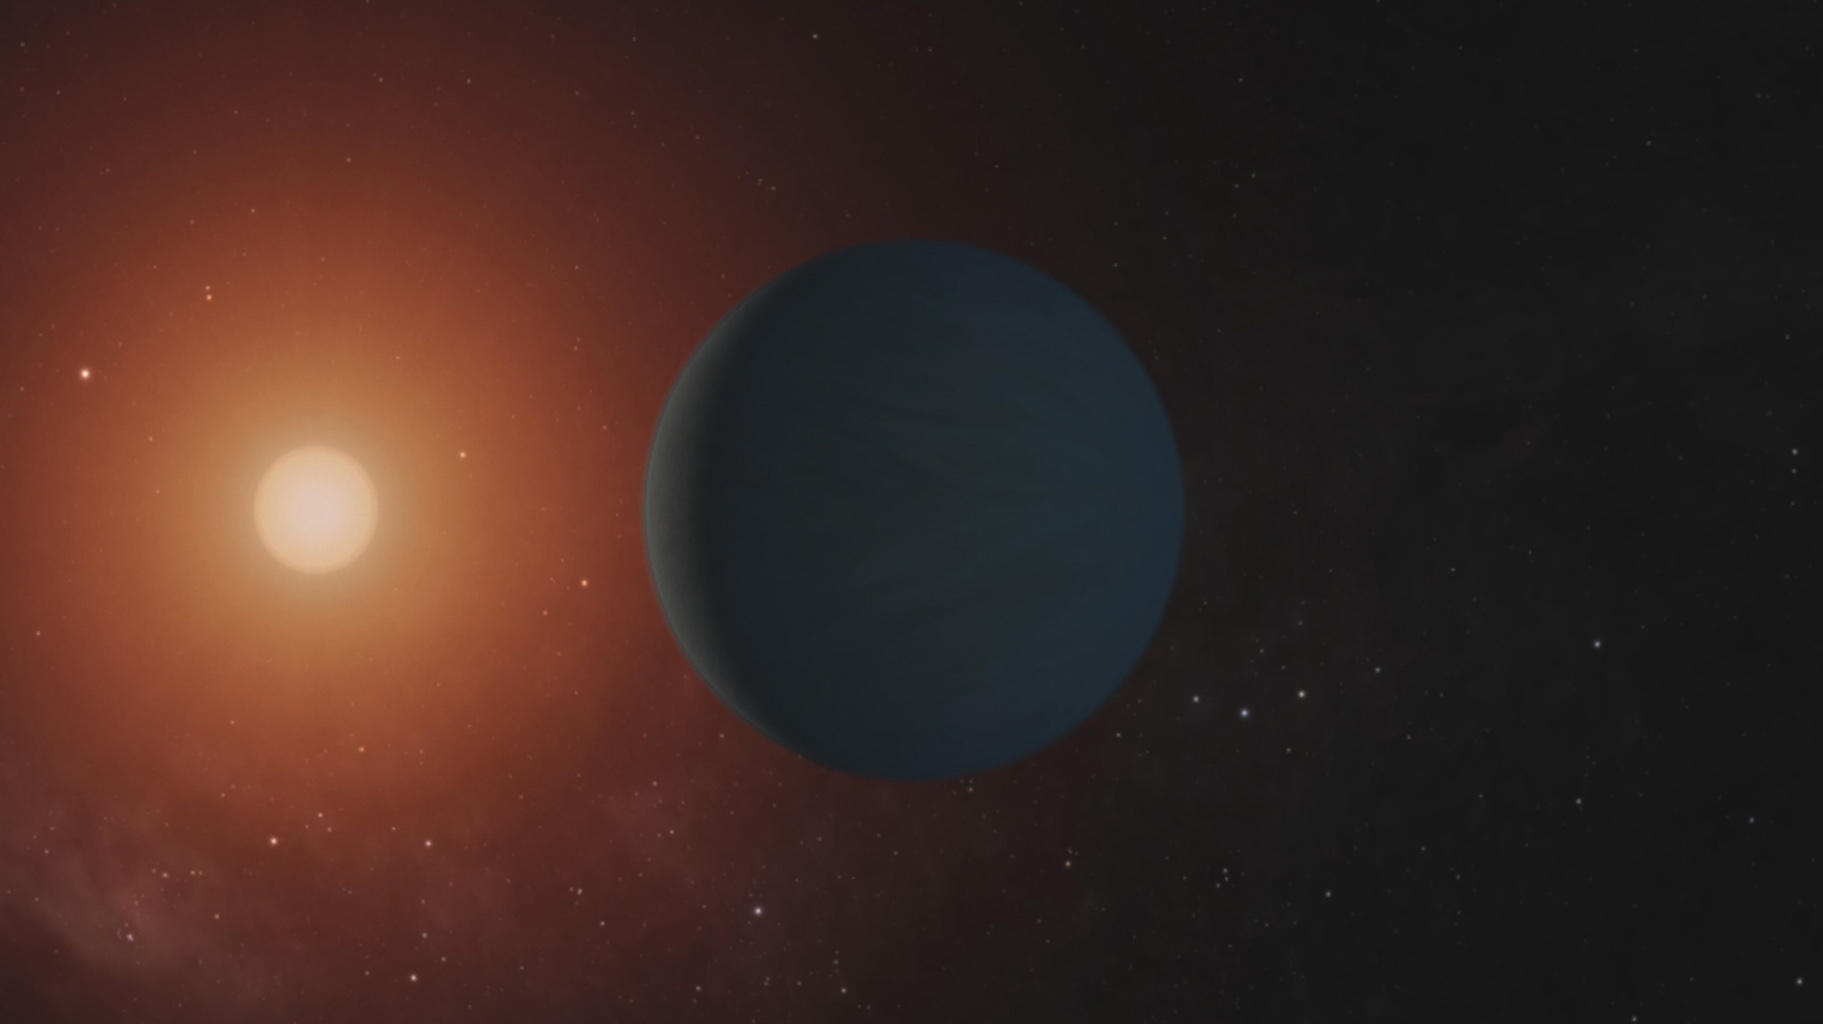 This is a frame from a video which shows illustrations of the seven Earth-size planets of TRAPPIST-1, an exoplanet system about 40 light-years away, based on data current as of February 2018.